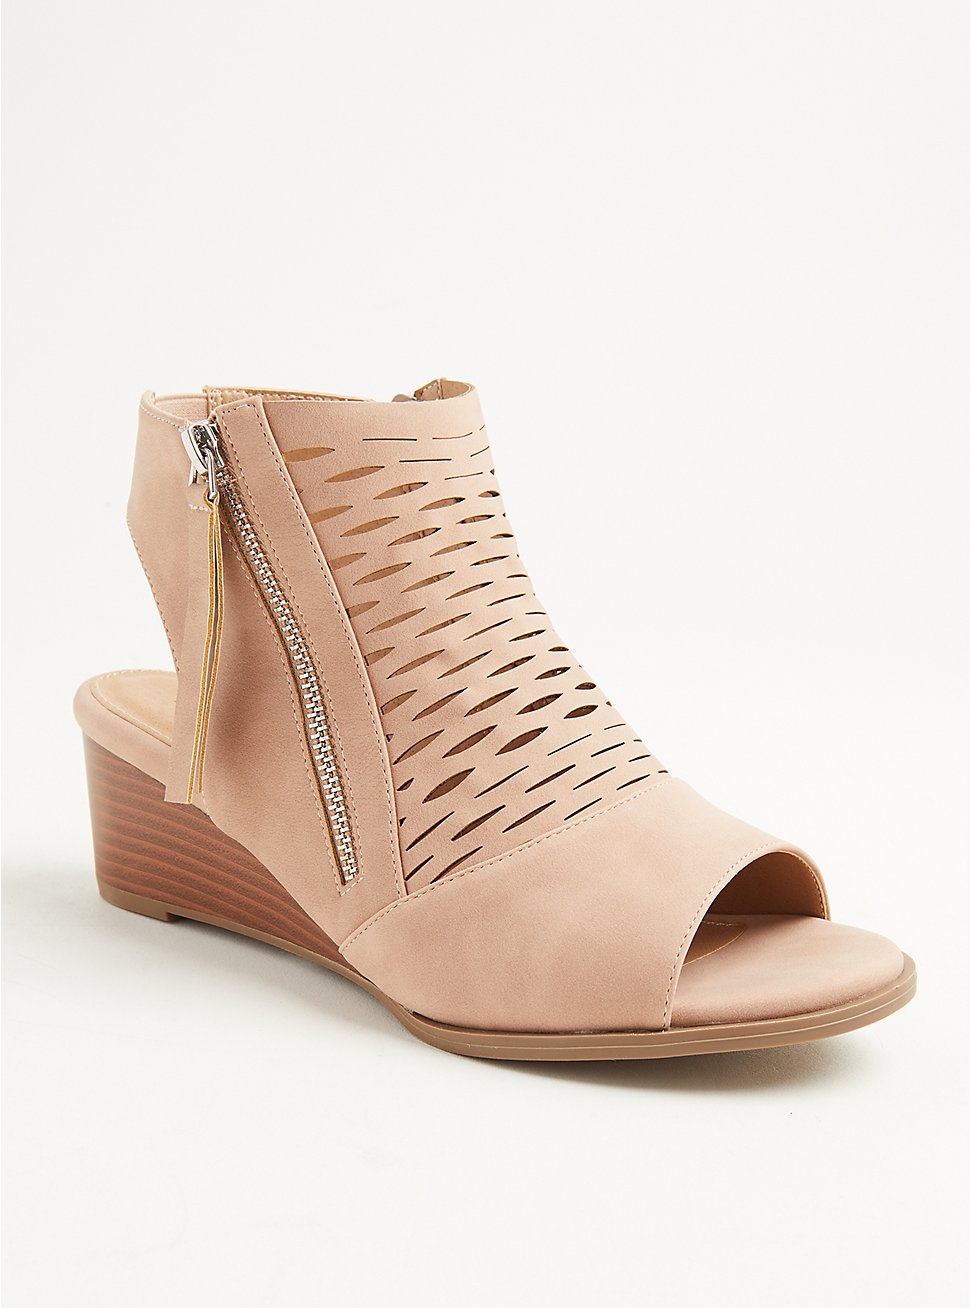 Blush Pink Faux Leather Perforated Wedge Shootie (WW), BLUSH, hi-res